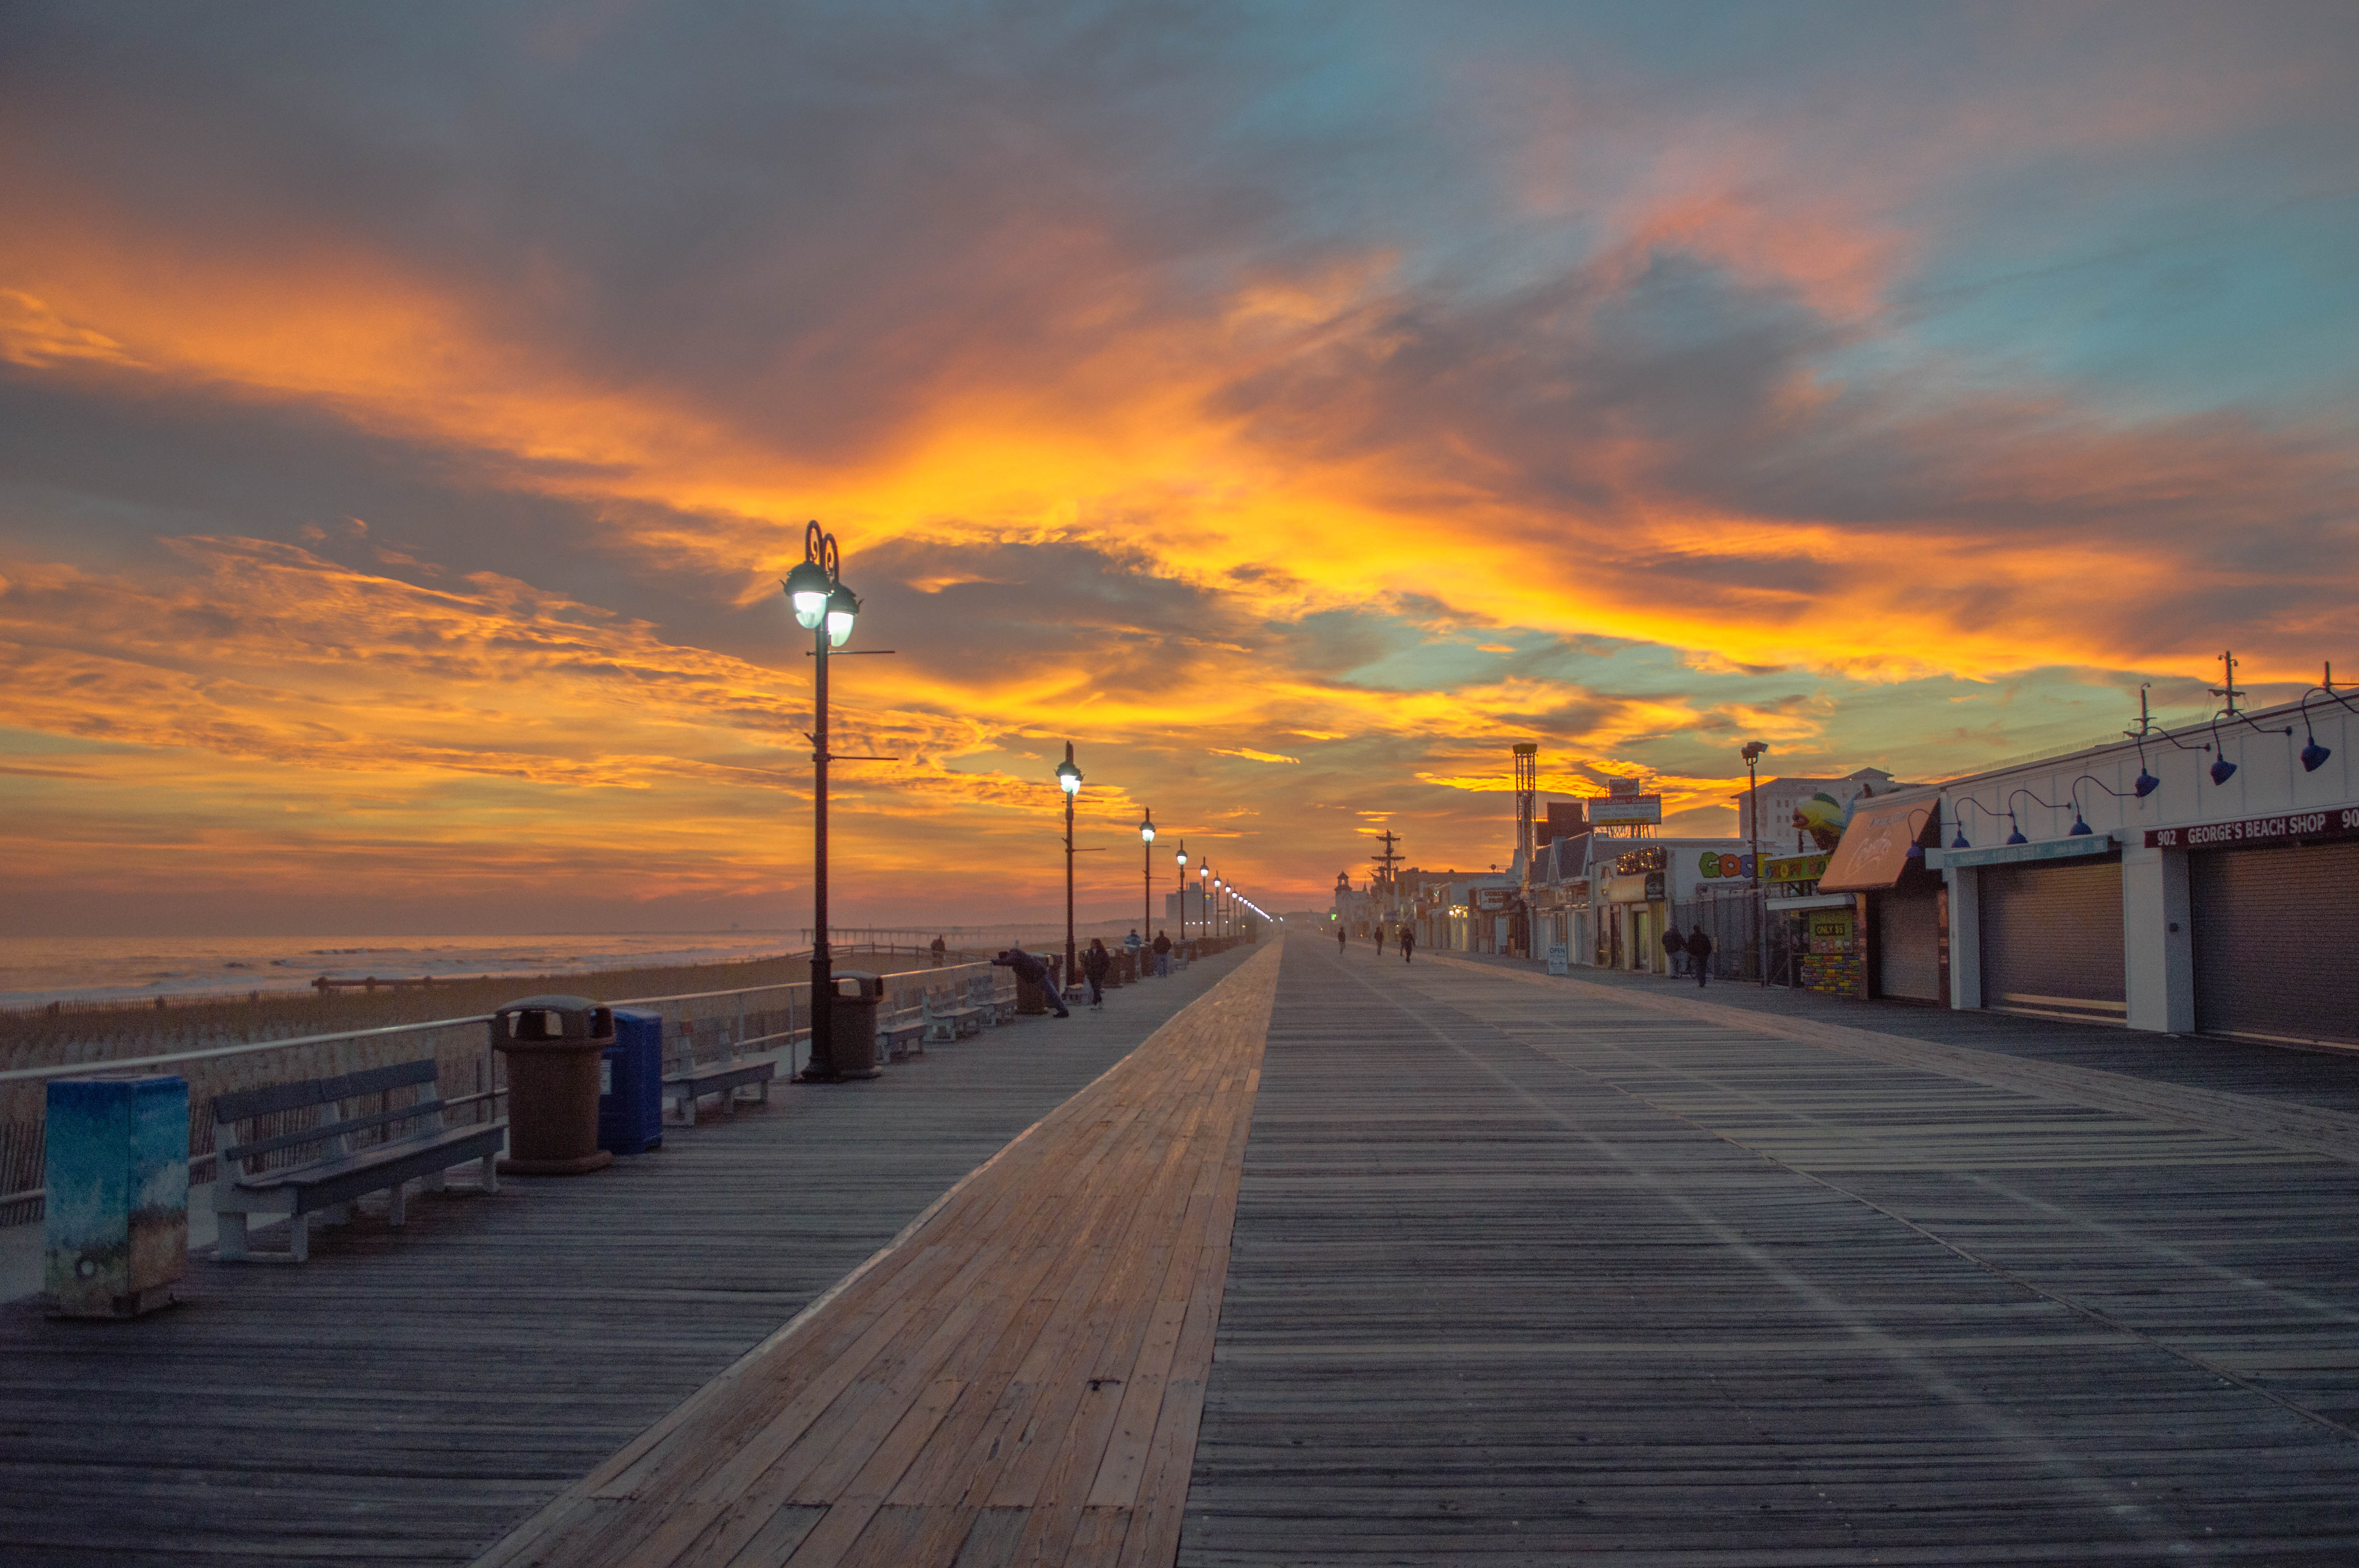 Ocean City, NJ: Boardwalks, Beaches, and Dole Whips at